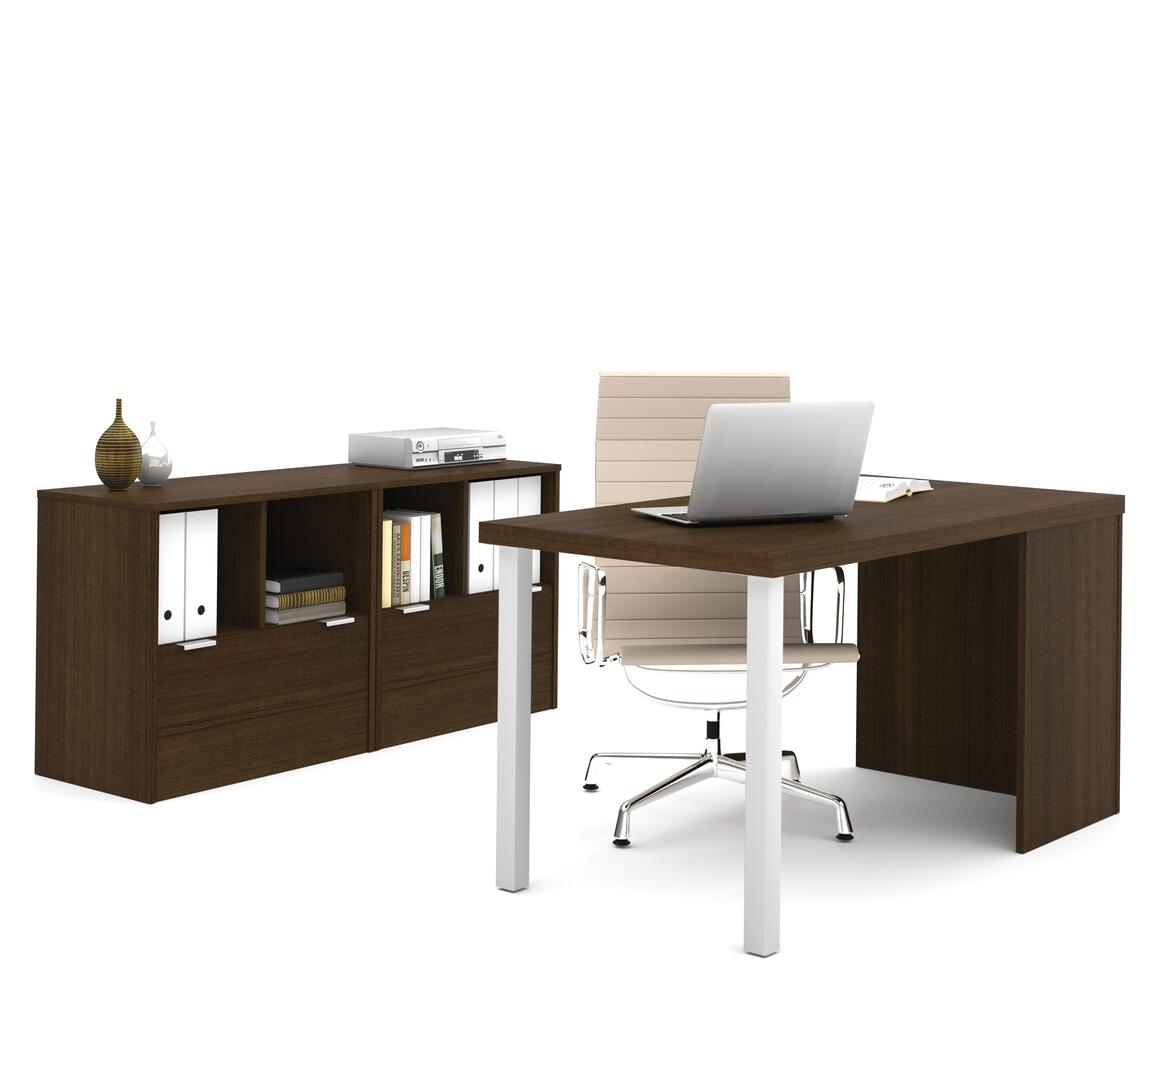 Bestar furniture 15085178 contemporary standard office for Furniture 5 years no interest